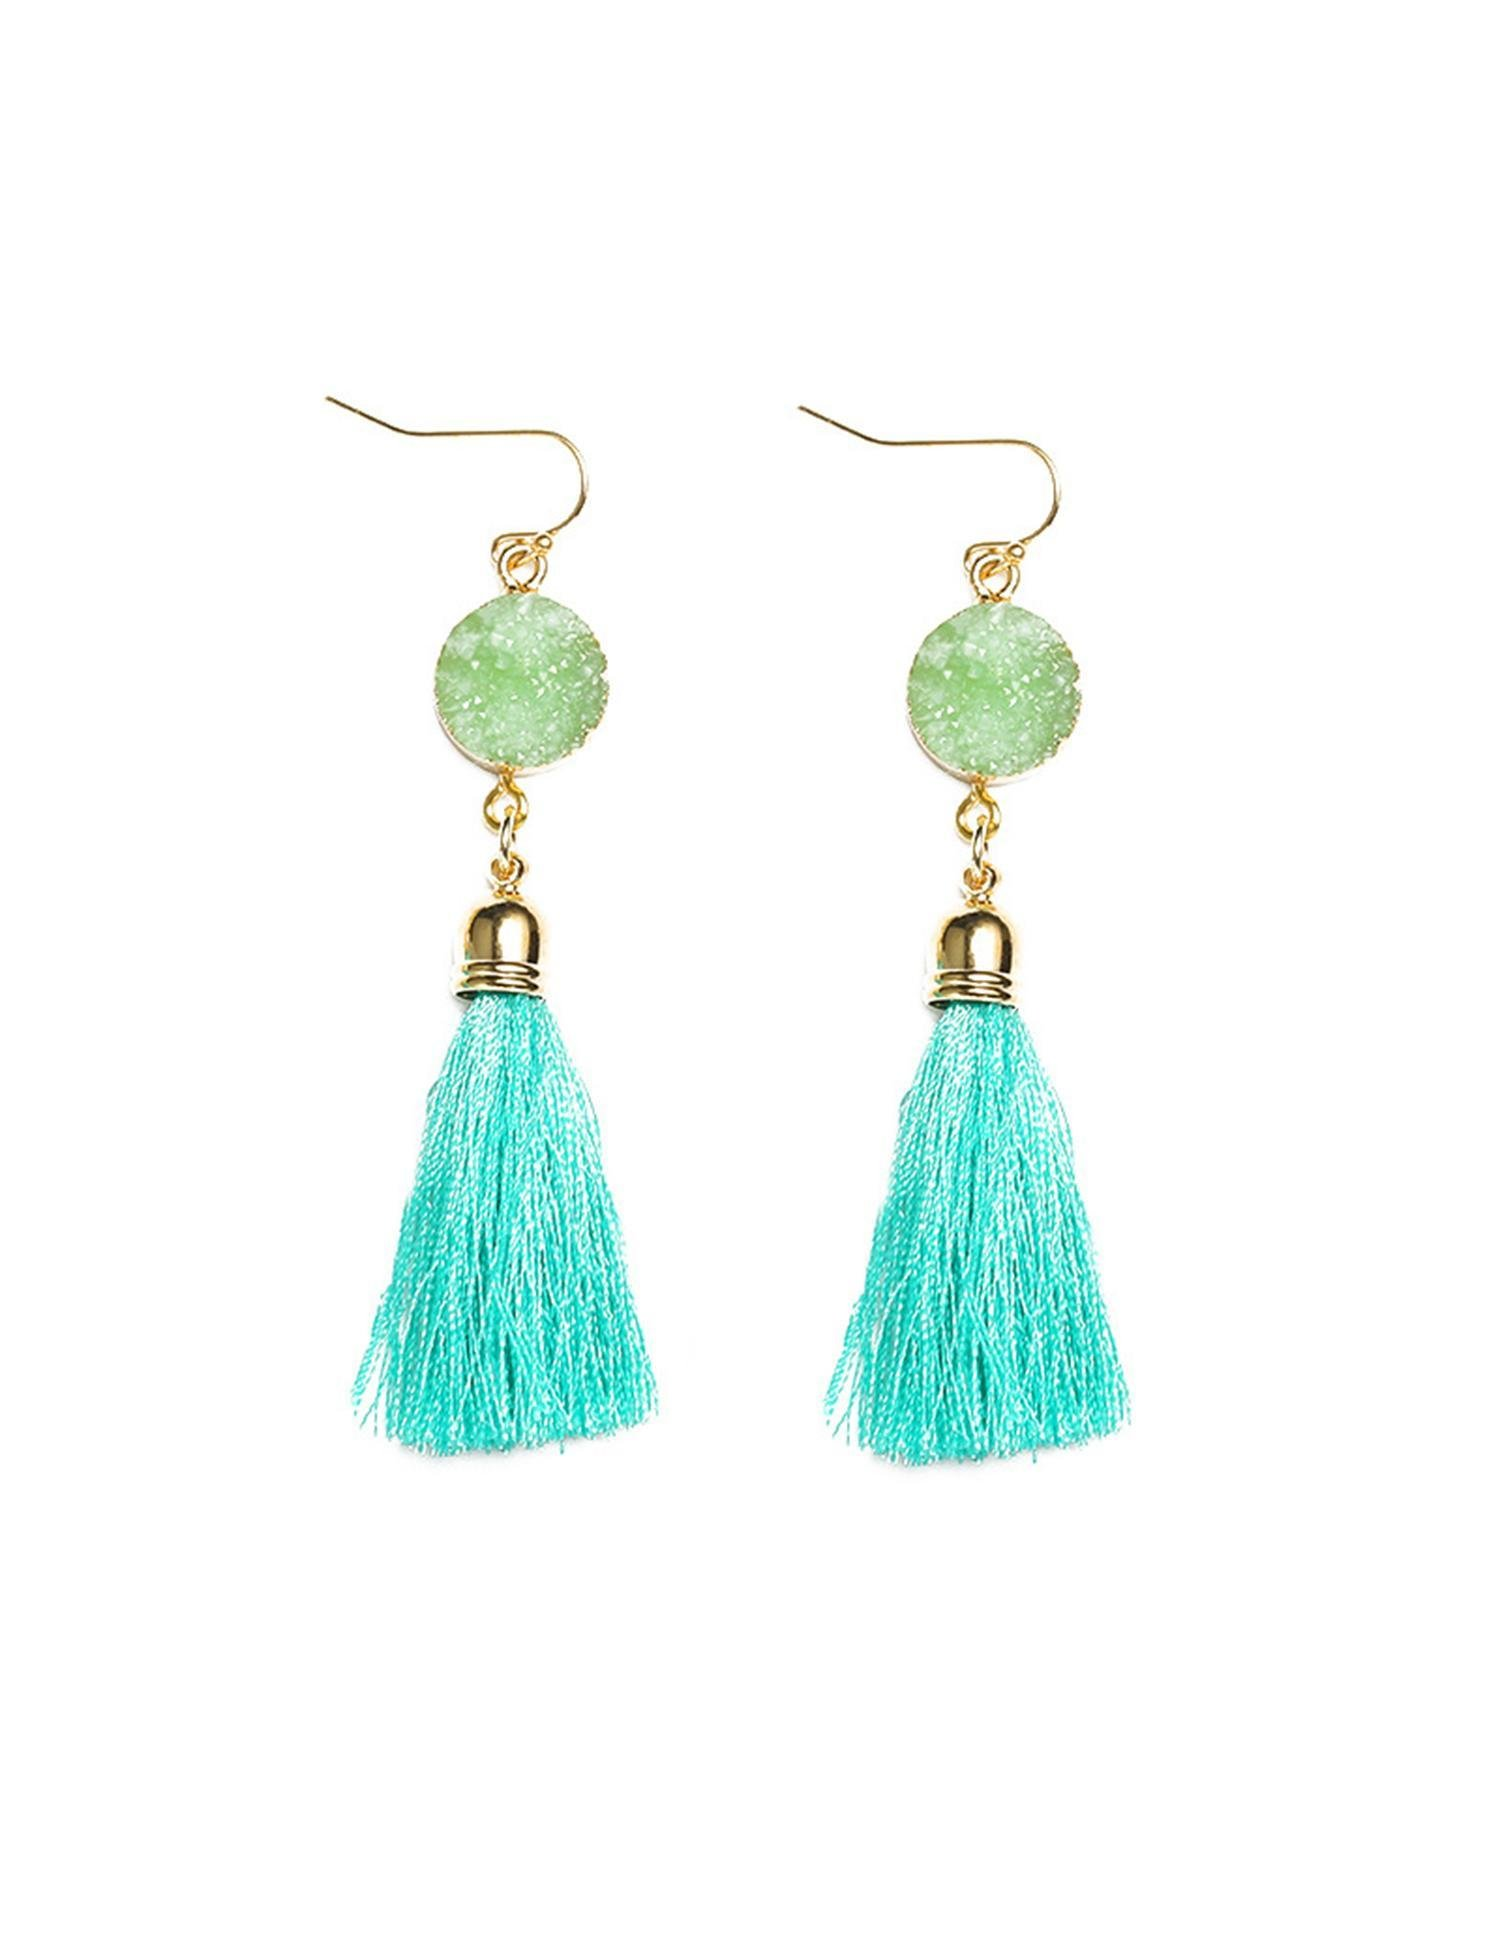 Goldenfox Women Casual Artificial Jade Tassel Geometric Hook Pierced Drop Earrings